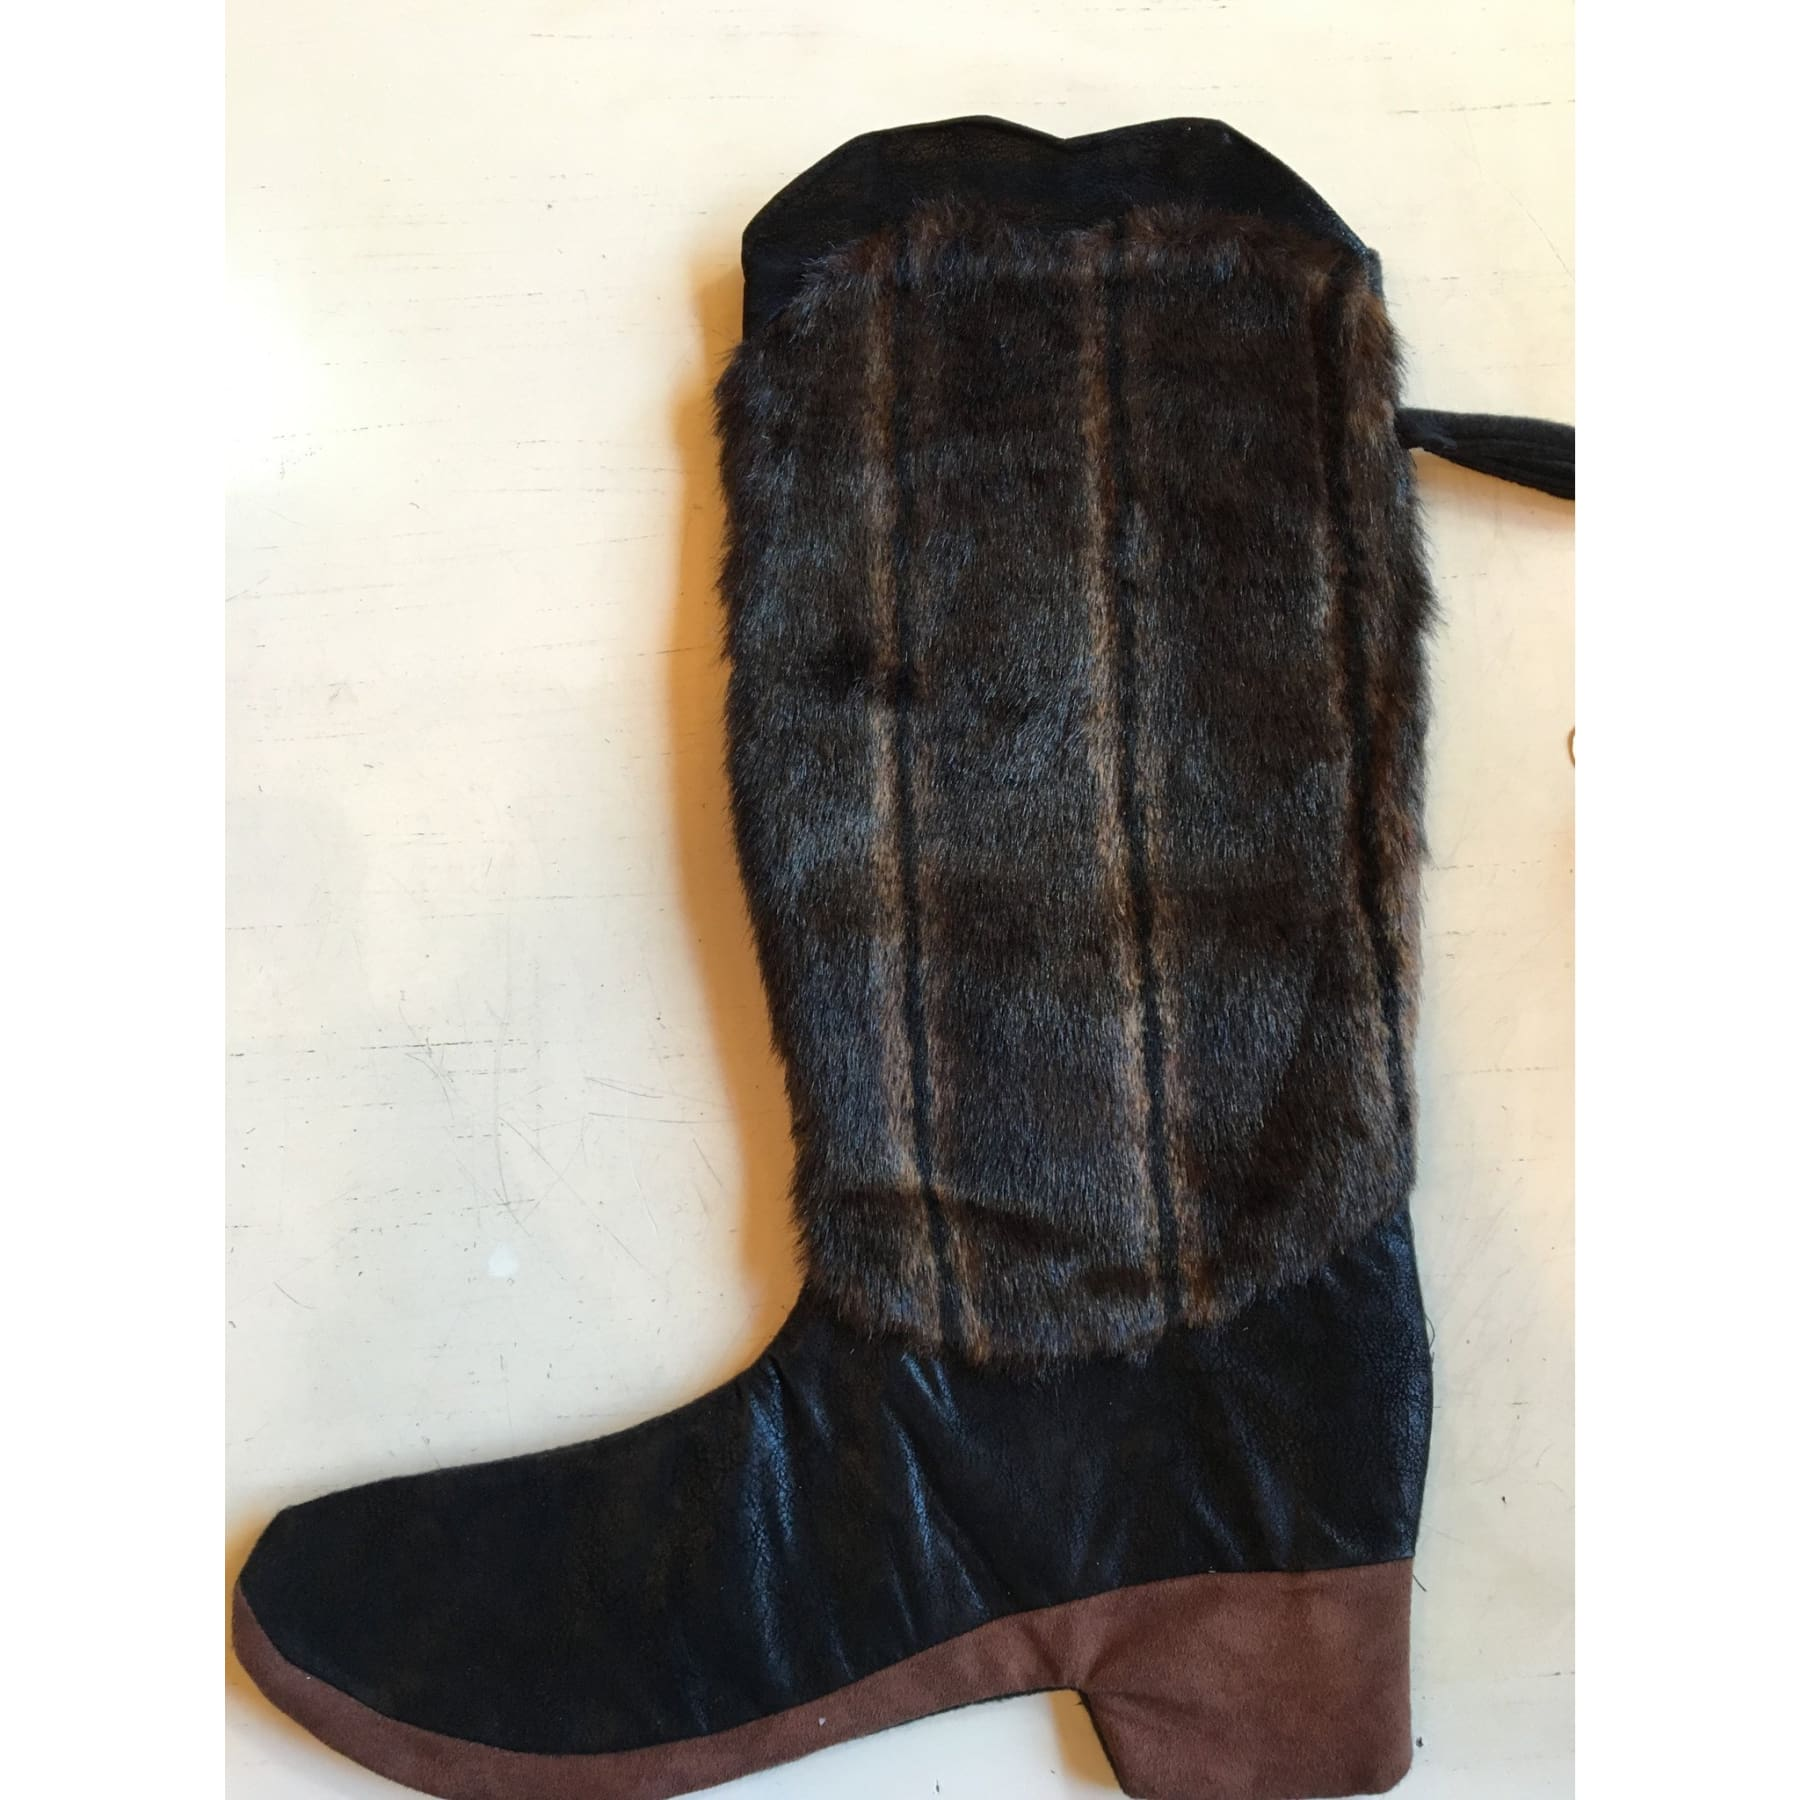 Brown & Black Fur Boot Christmas Stocking,Home Decor - Dirt Road Divas Boutique